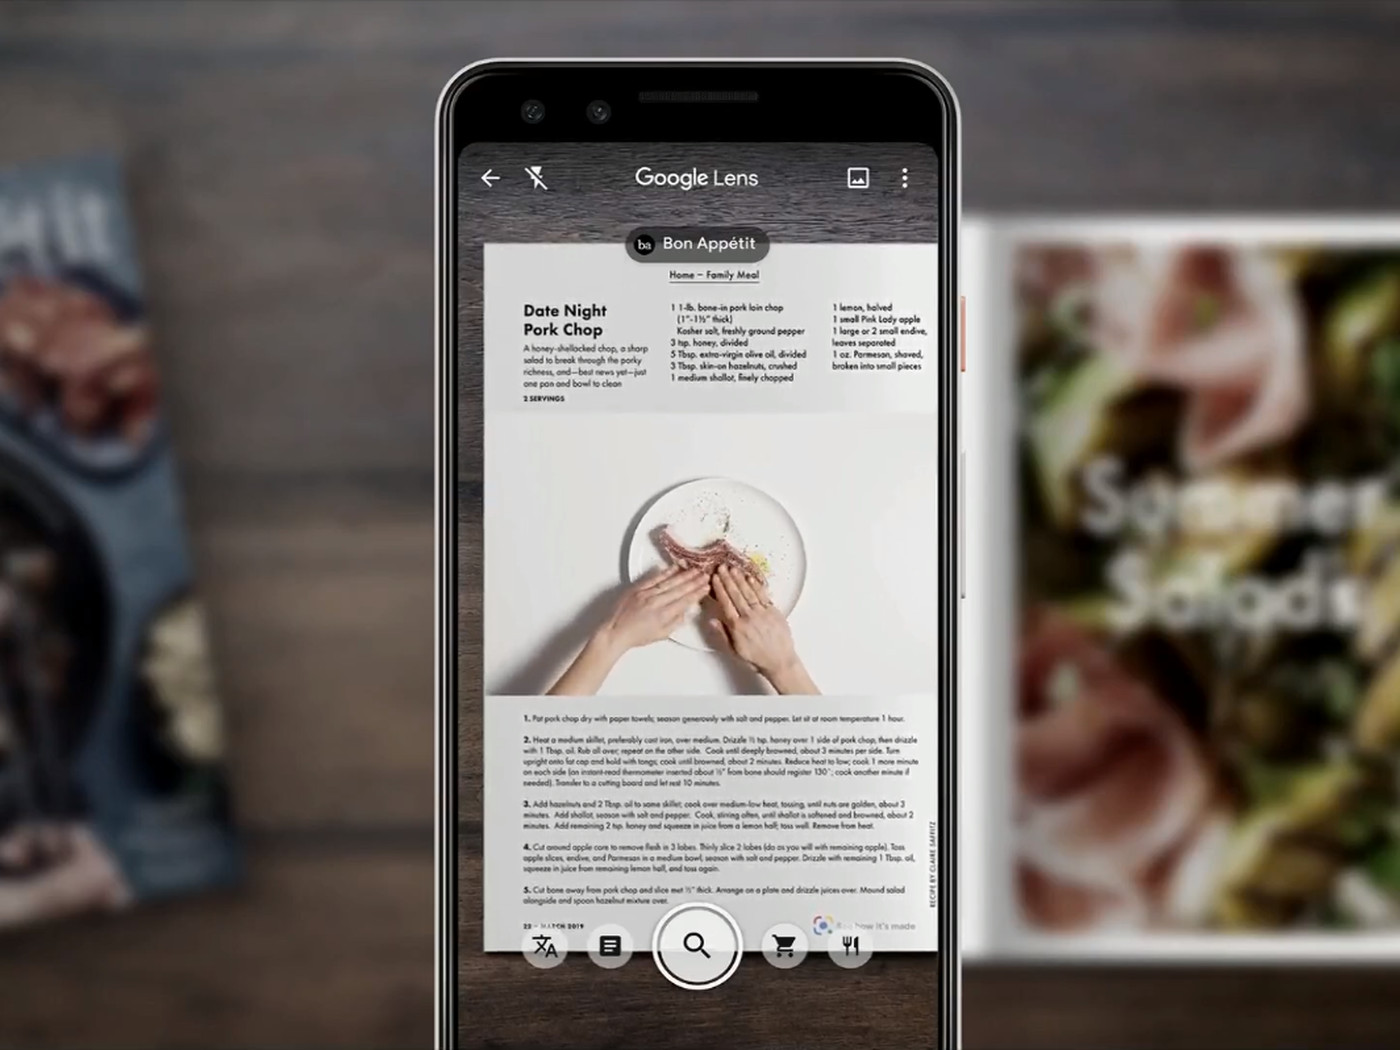 Google Lens will start recommending what you should eat at